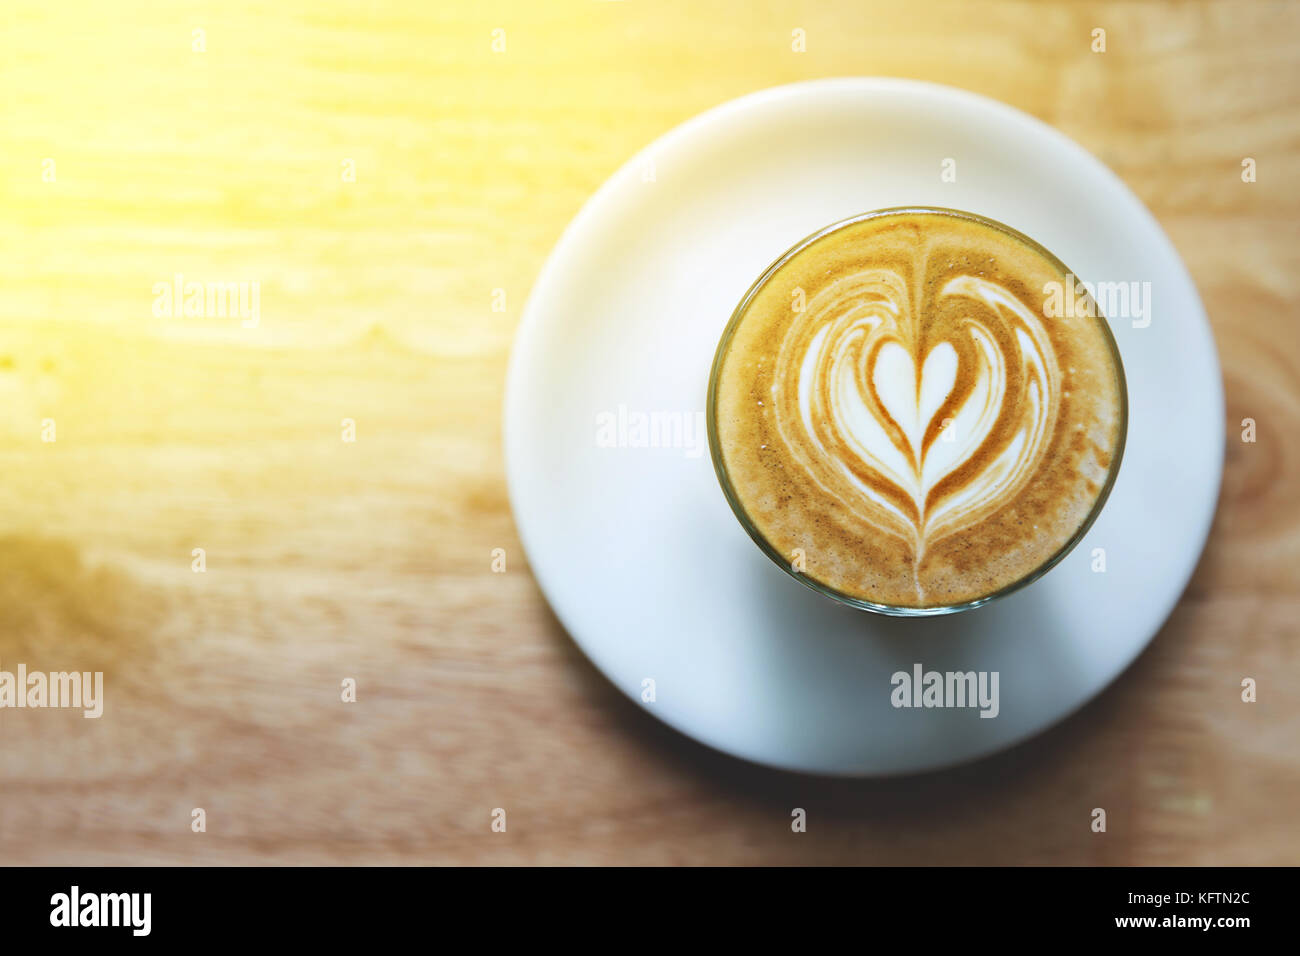 heart drawing on latte art coffee on wood table background - Stock Image